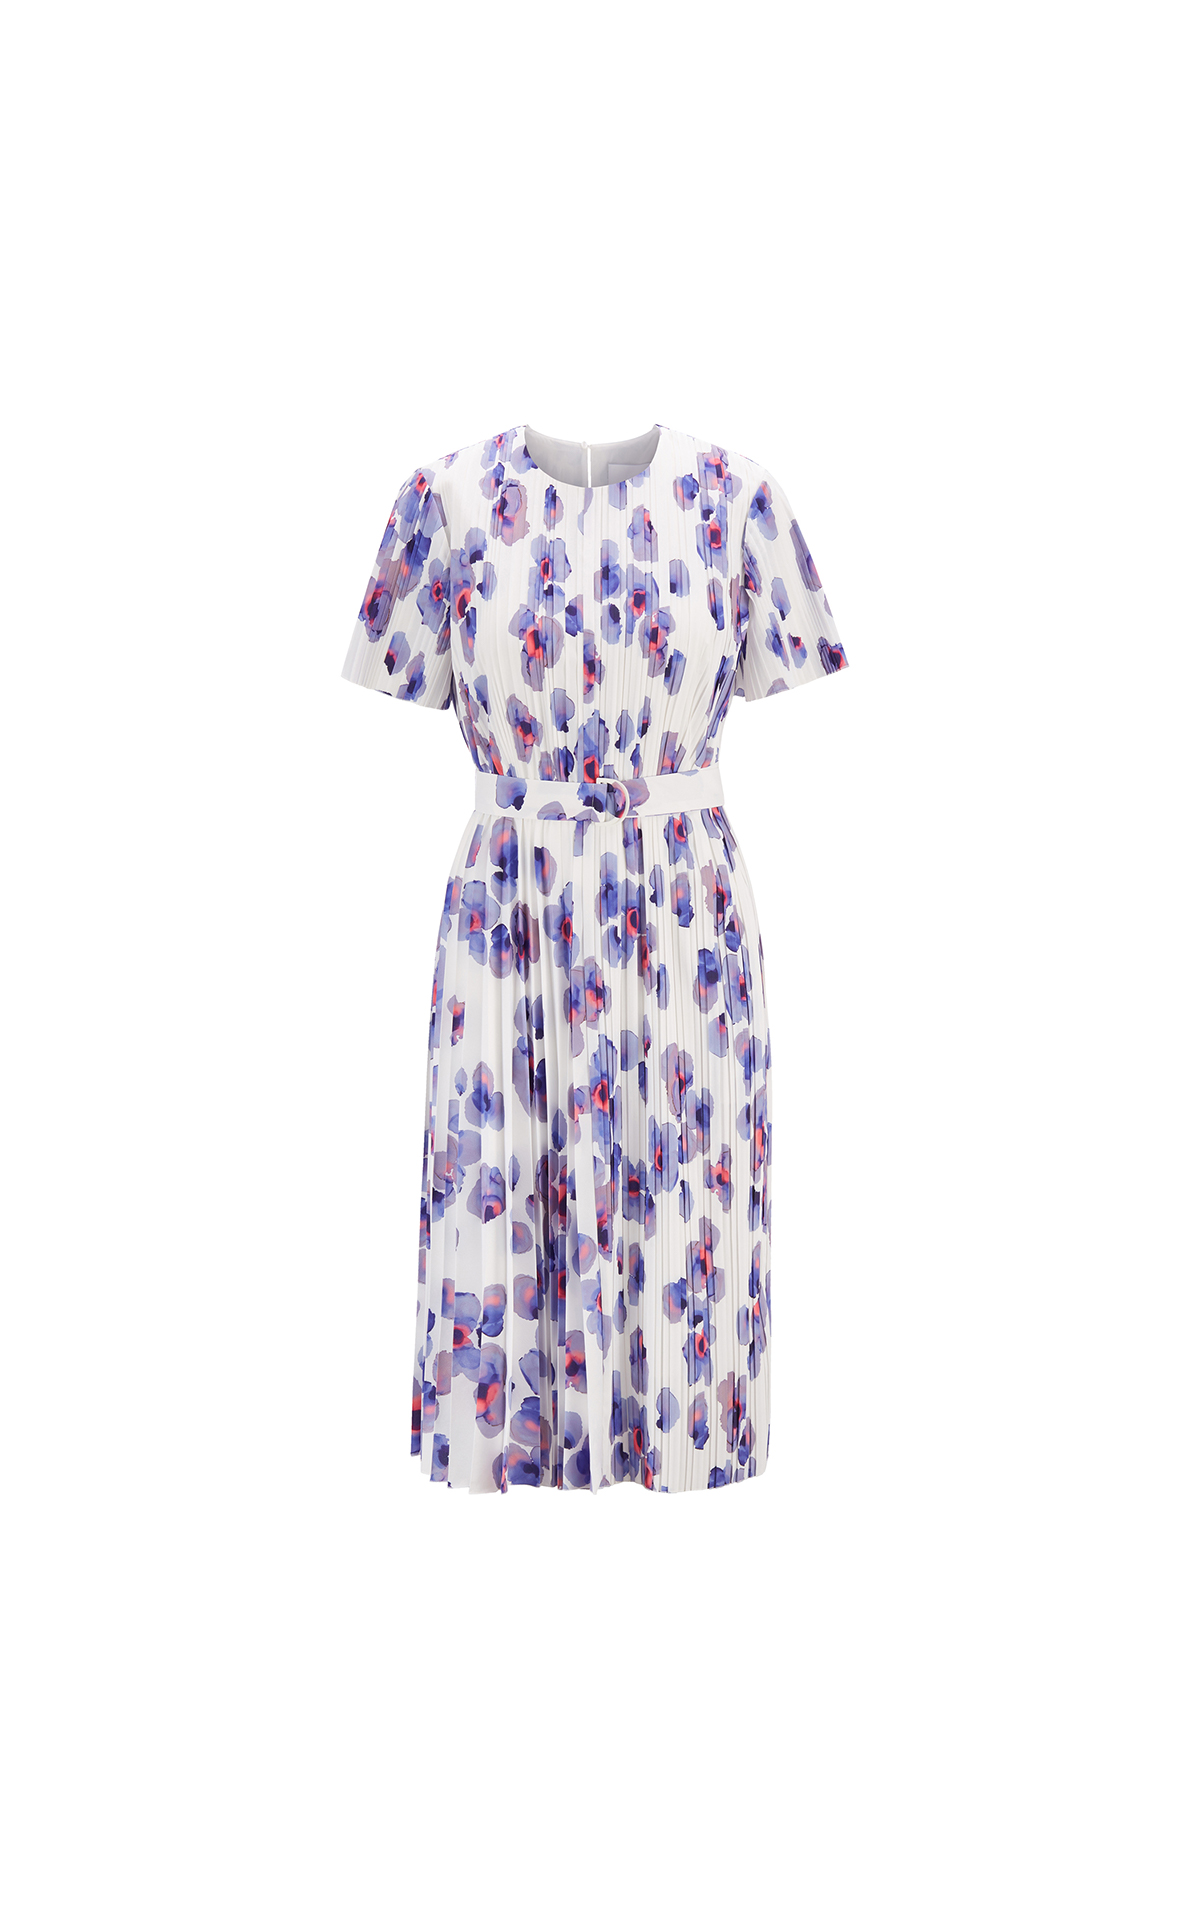 BOSS Women's plissé dress at The Bicester Village Shopping Collection